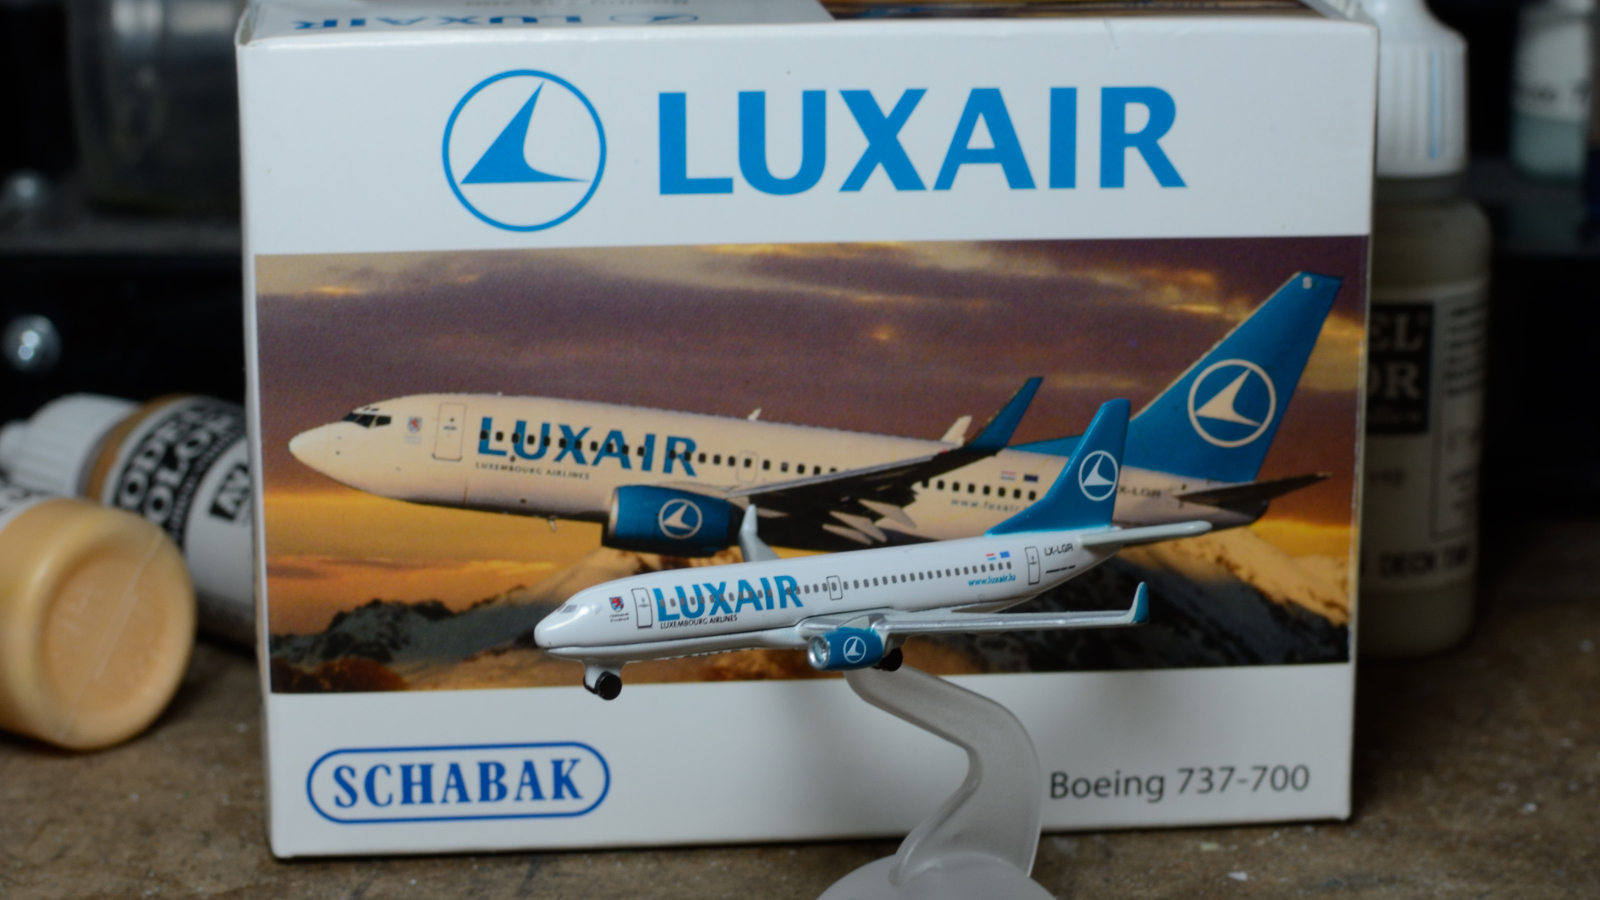 1:600 Luxair 737-700 (produced by Schabak)